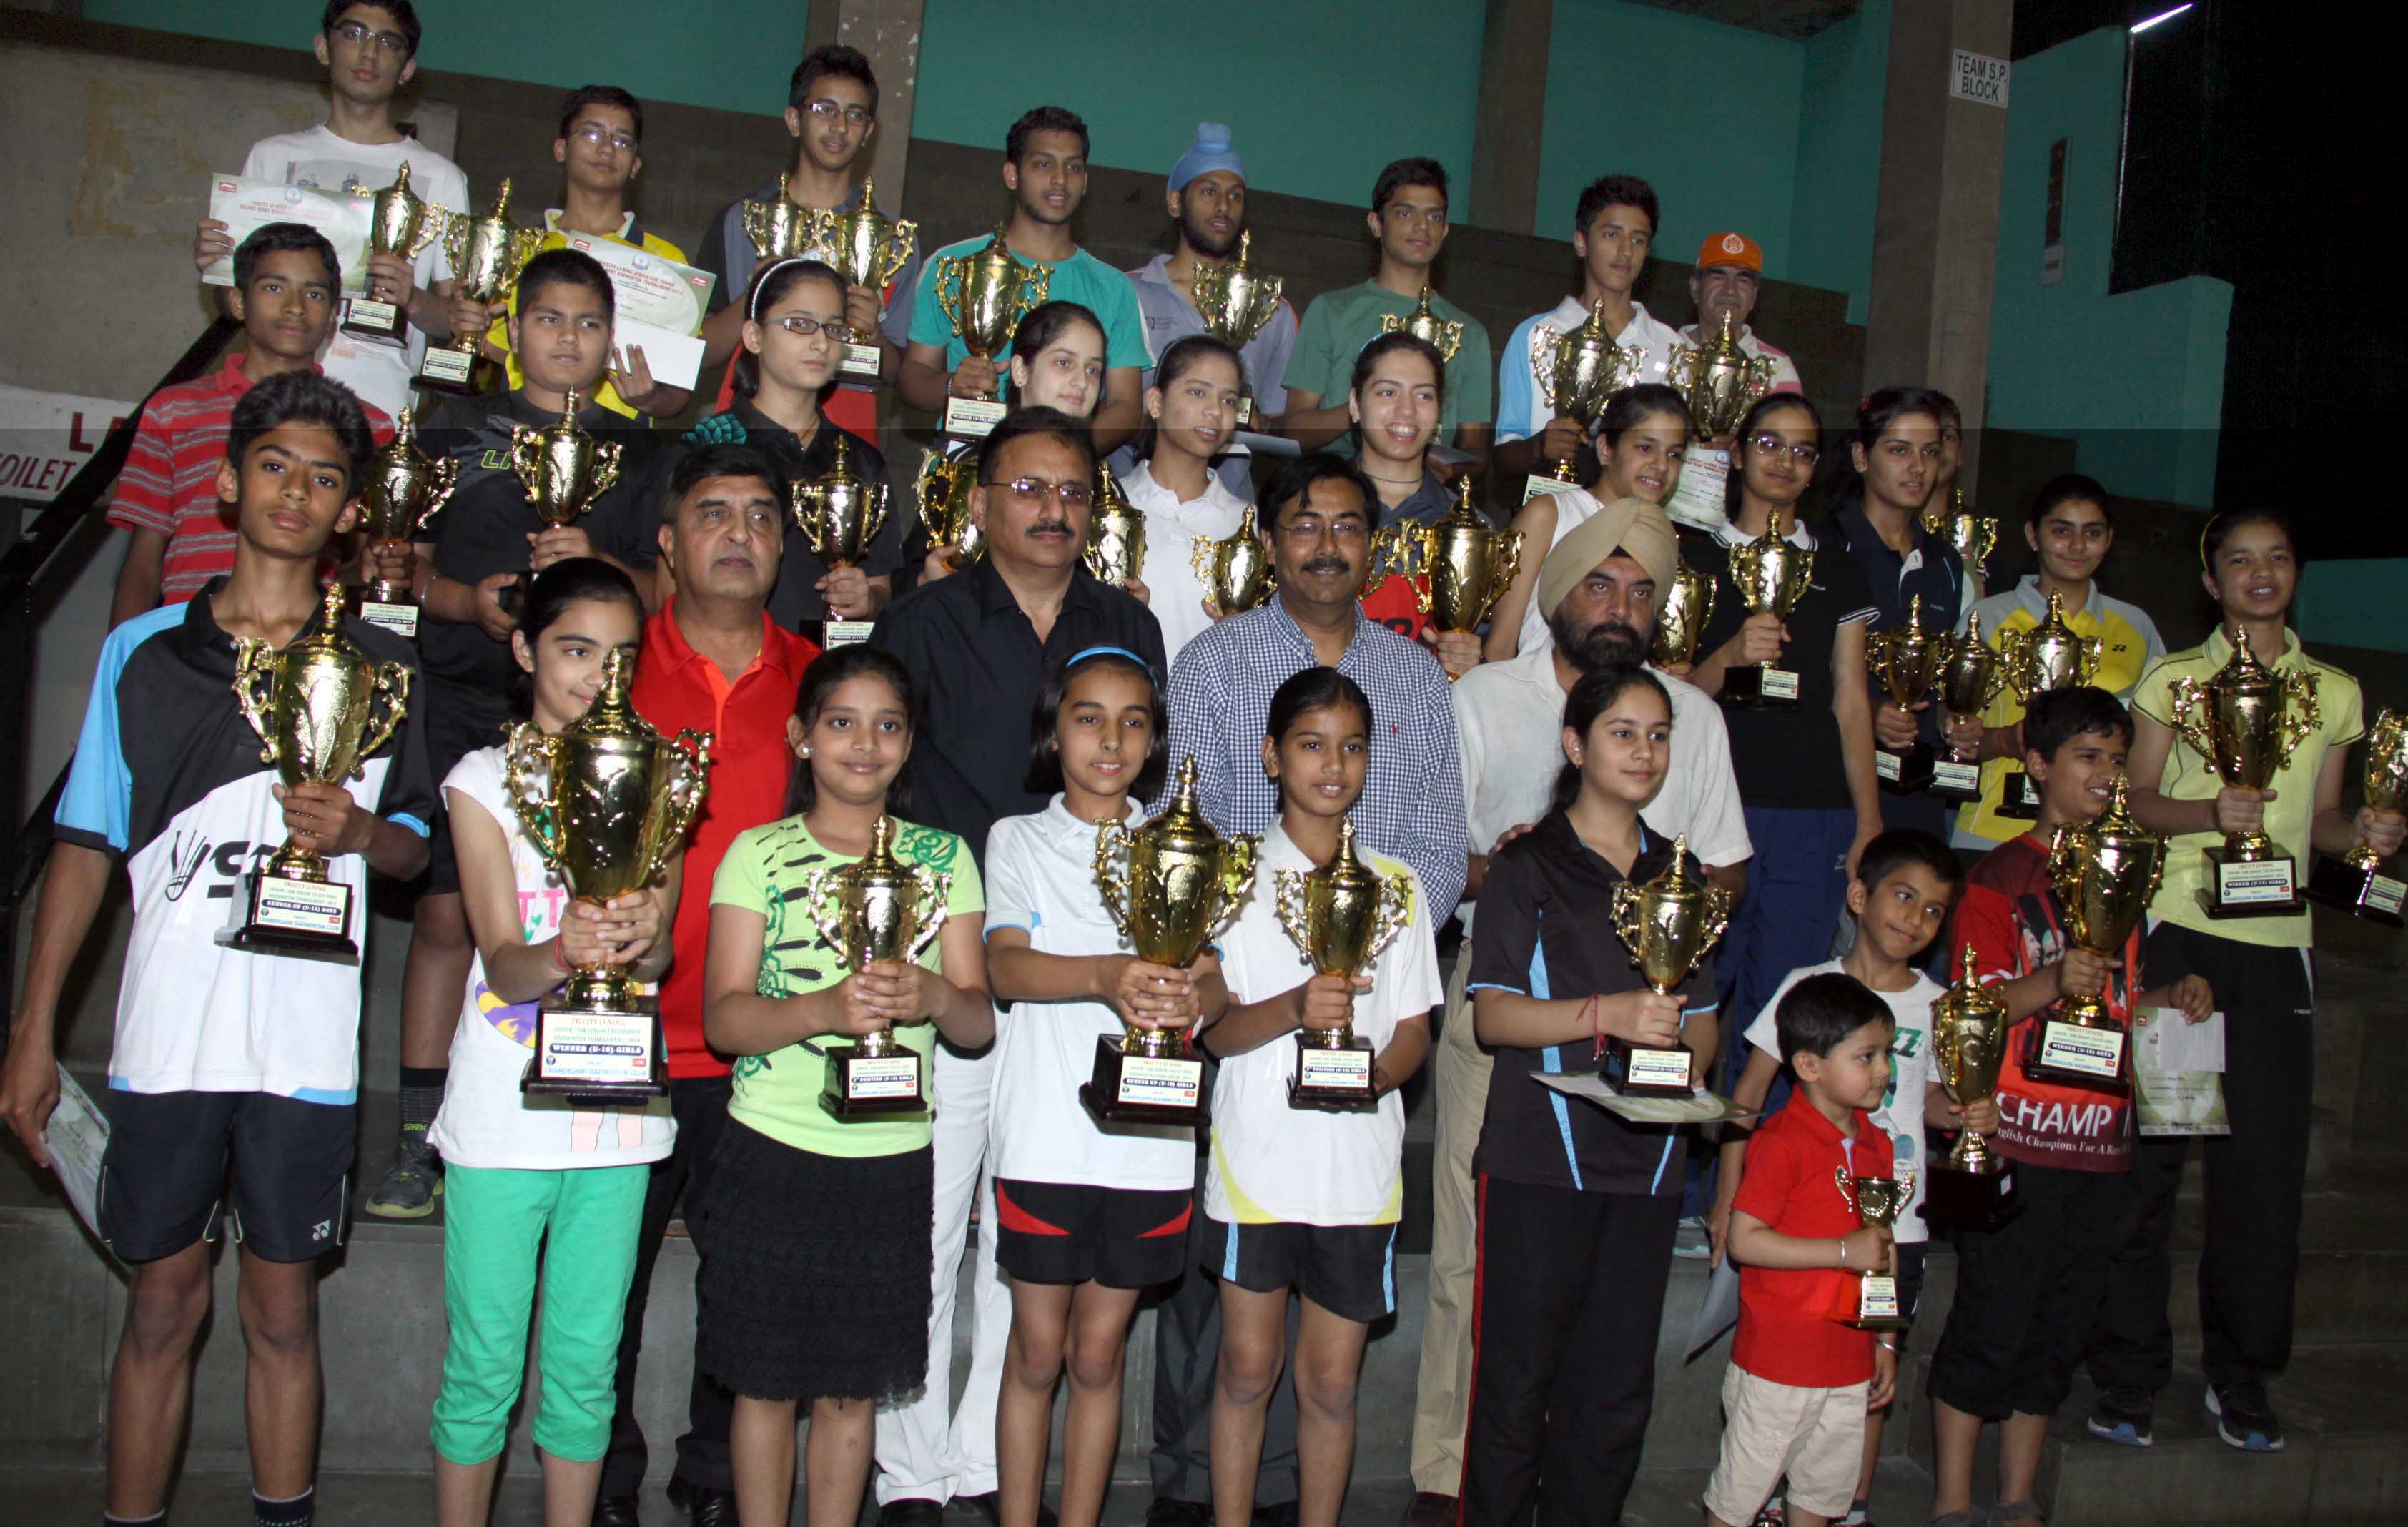 UT Home Secretary, Mr. Anil Kumar and others poses with the winners at the Closing Ceremony of Tricity Li-ning Junior/Sub Junior Talent Hunt Badminton Tournament-2014 at Sports Stadium, Sector-42, Chandigarh on Sunday, April 20, 2014.